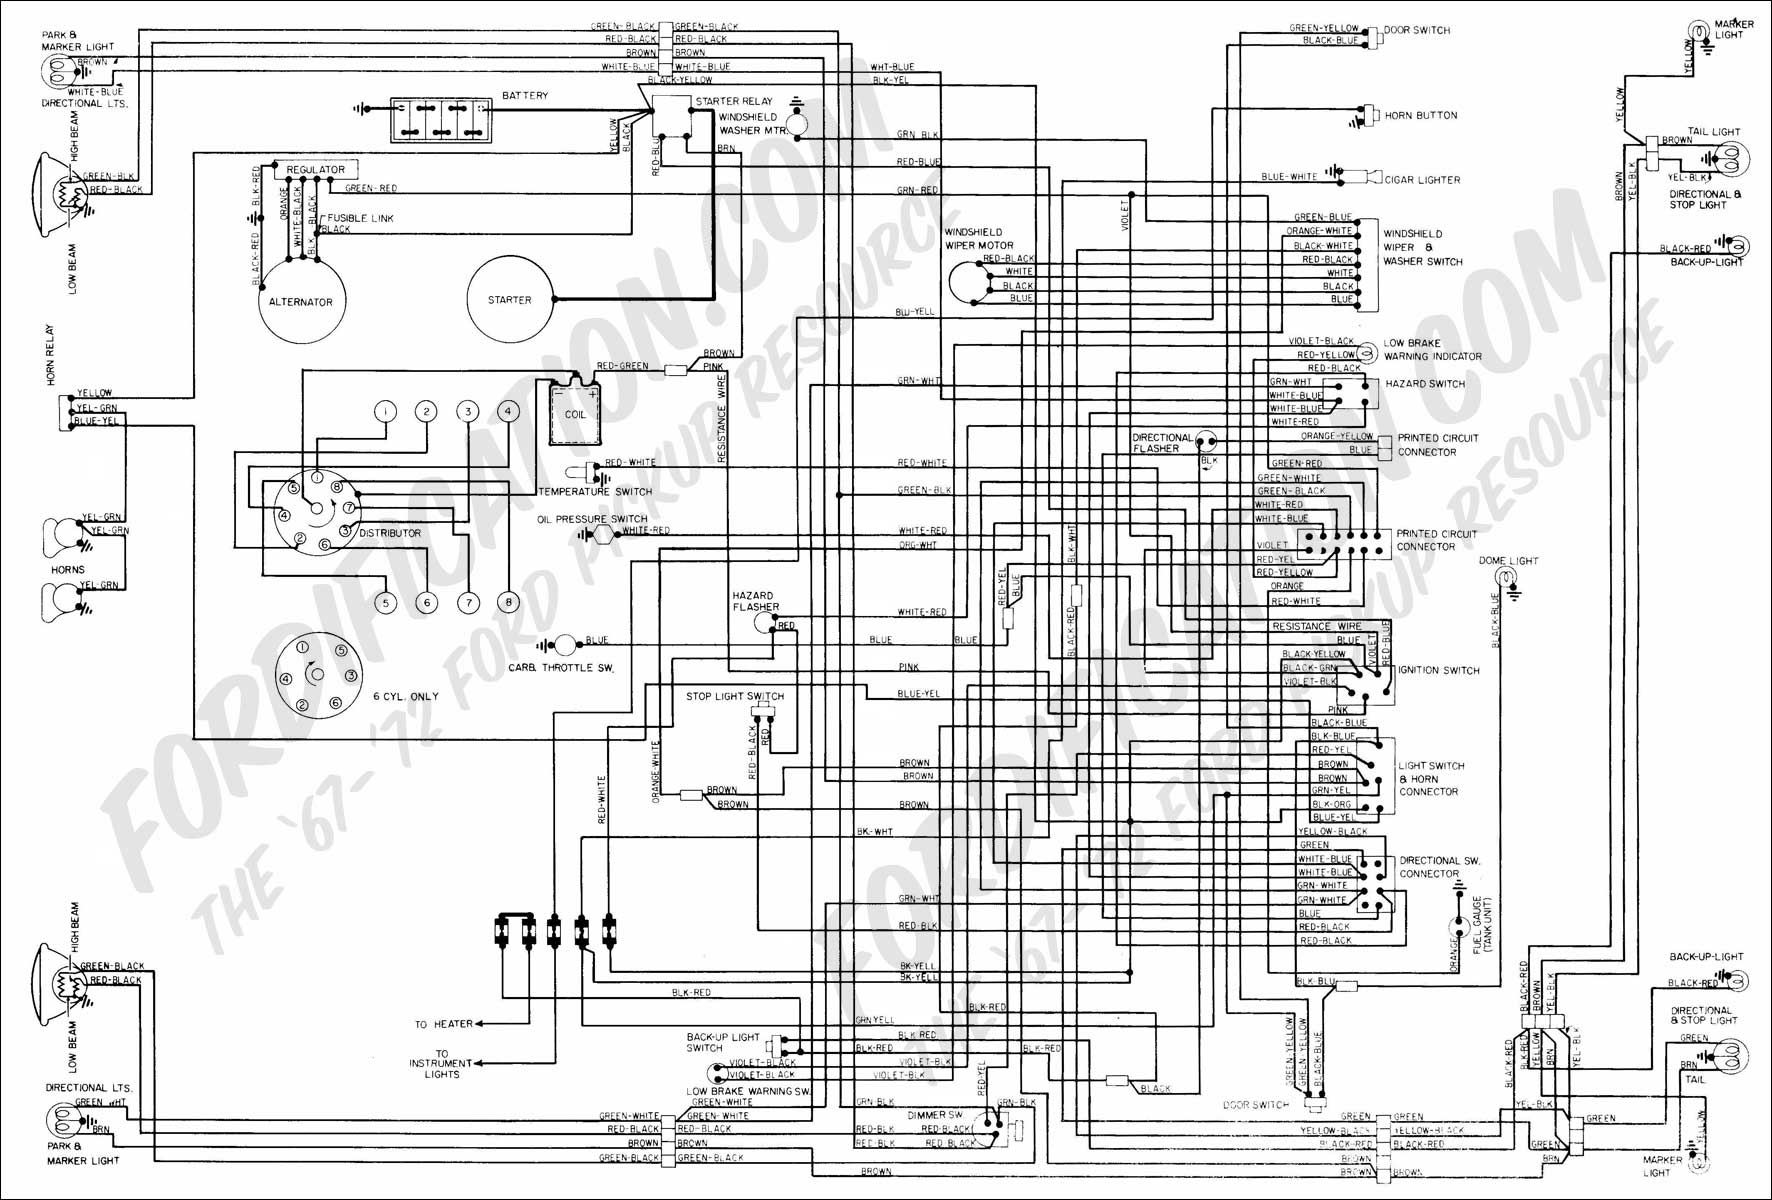 hight resolution of 2005 f250 wiring diagram wiring diagram mega 2005 ford f250 radio wiring diagram 2005 f250 wiring diagram